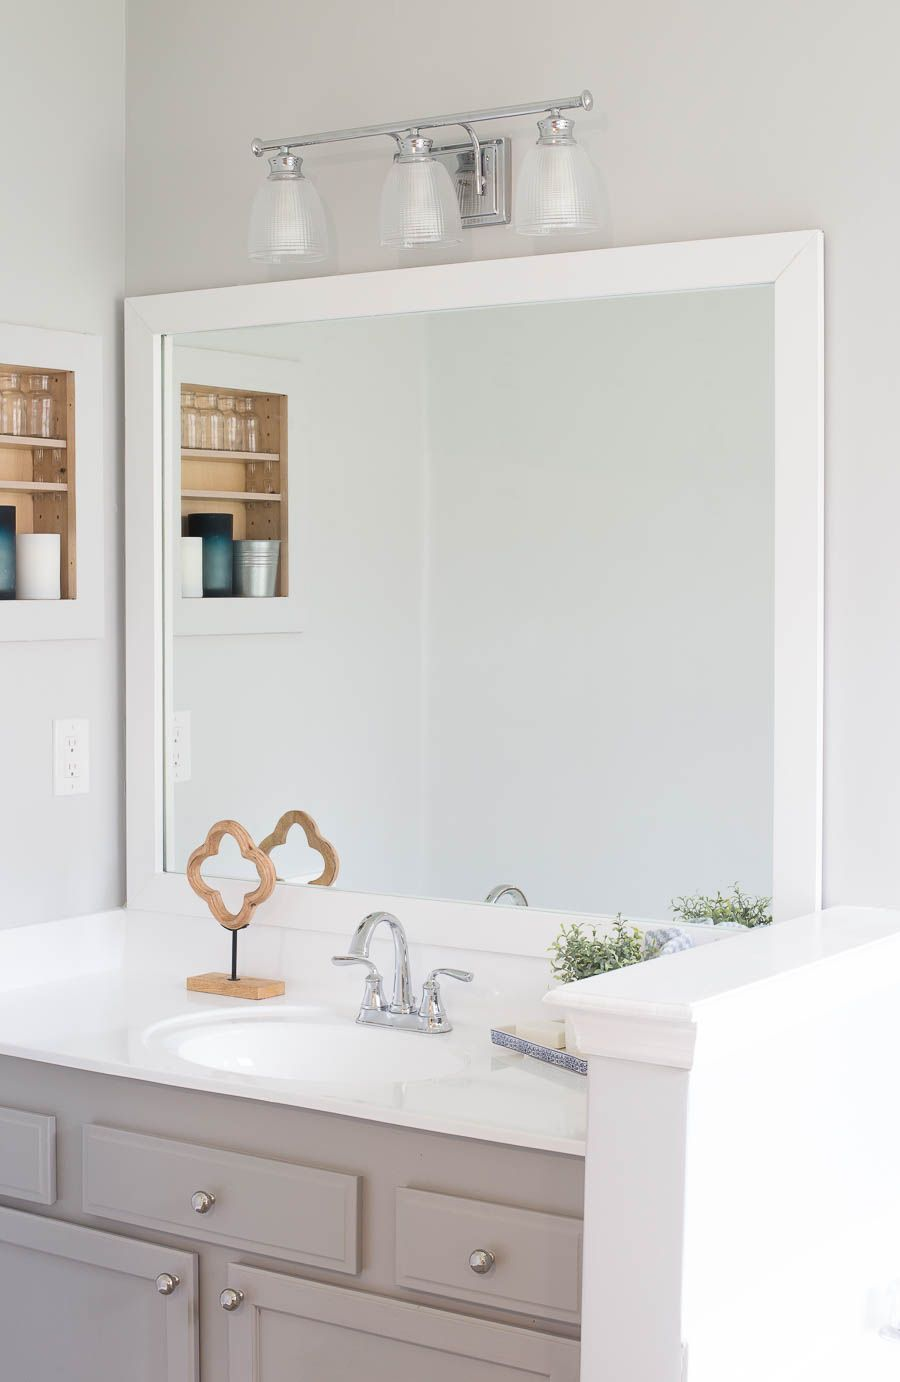 How to Frame a Bathroom Mirror - Easy DIY project | Pinterest